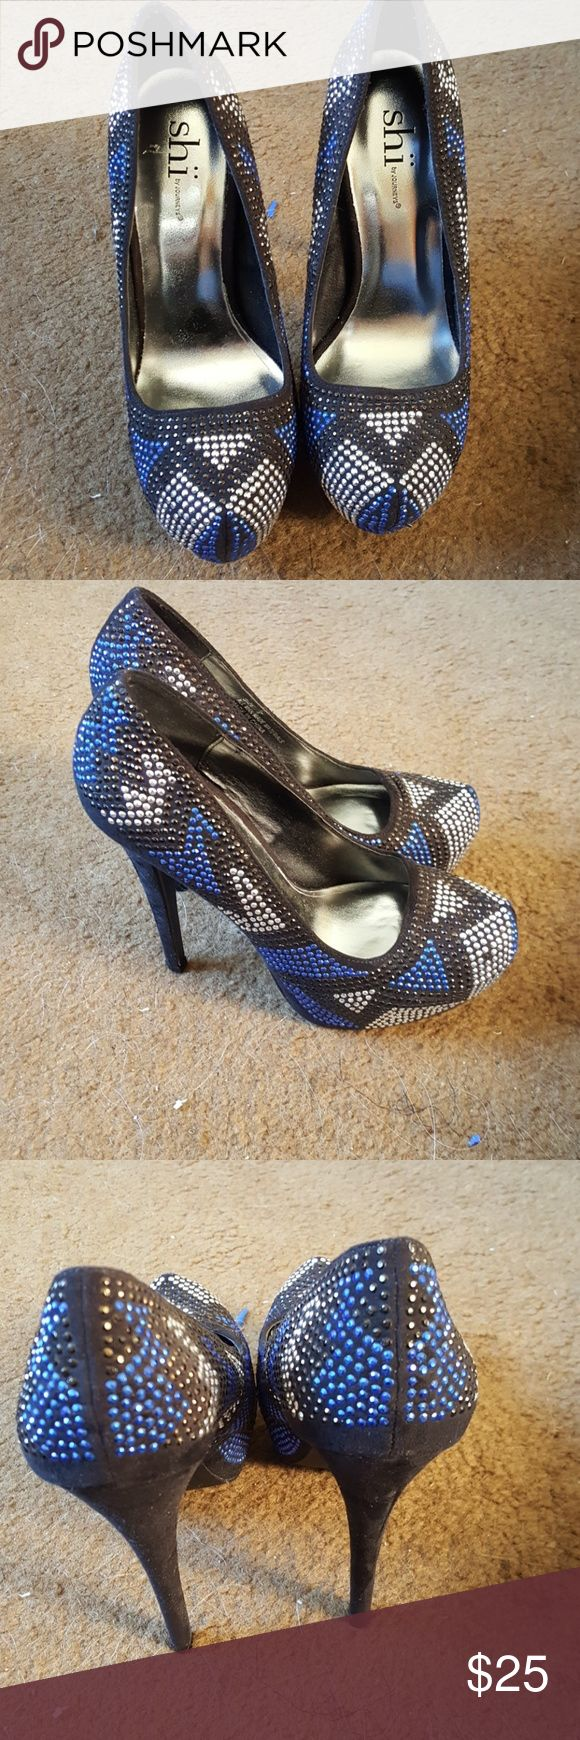 Multi color high heels Sequin multi color high heels. Like new Shi by JOURNEYS Shoes Heels